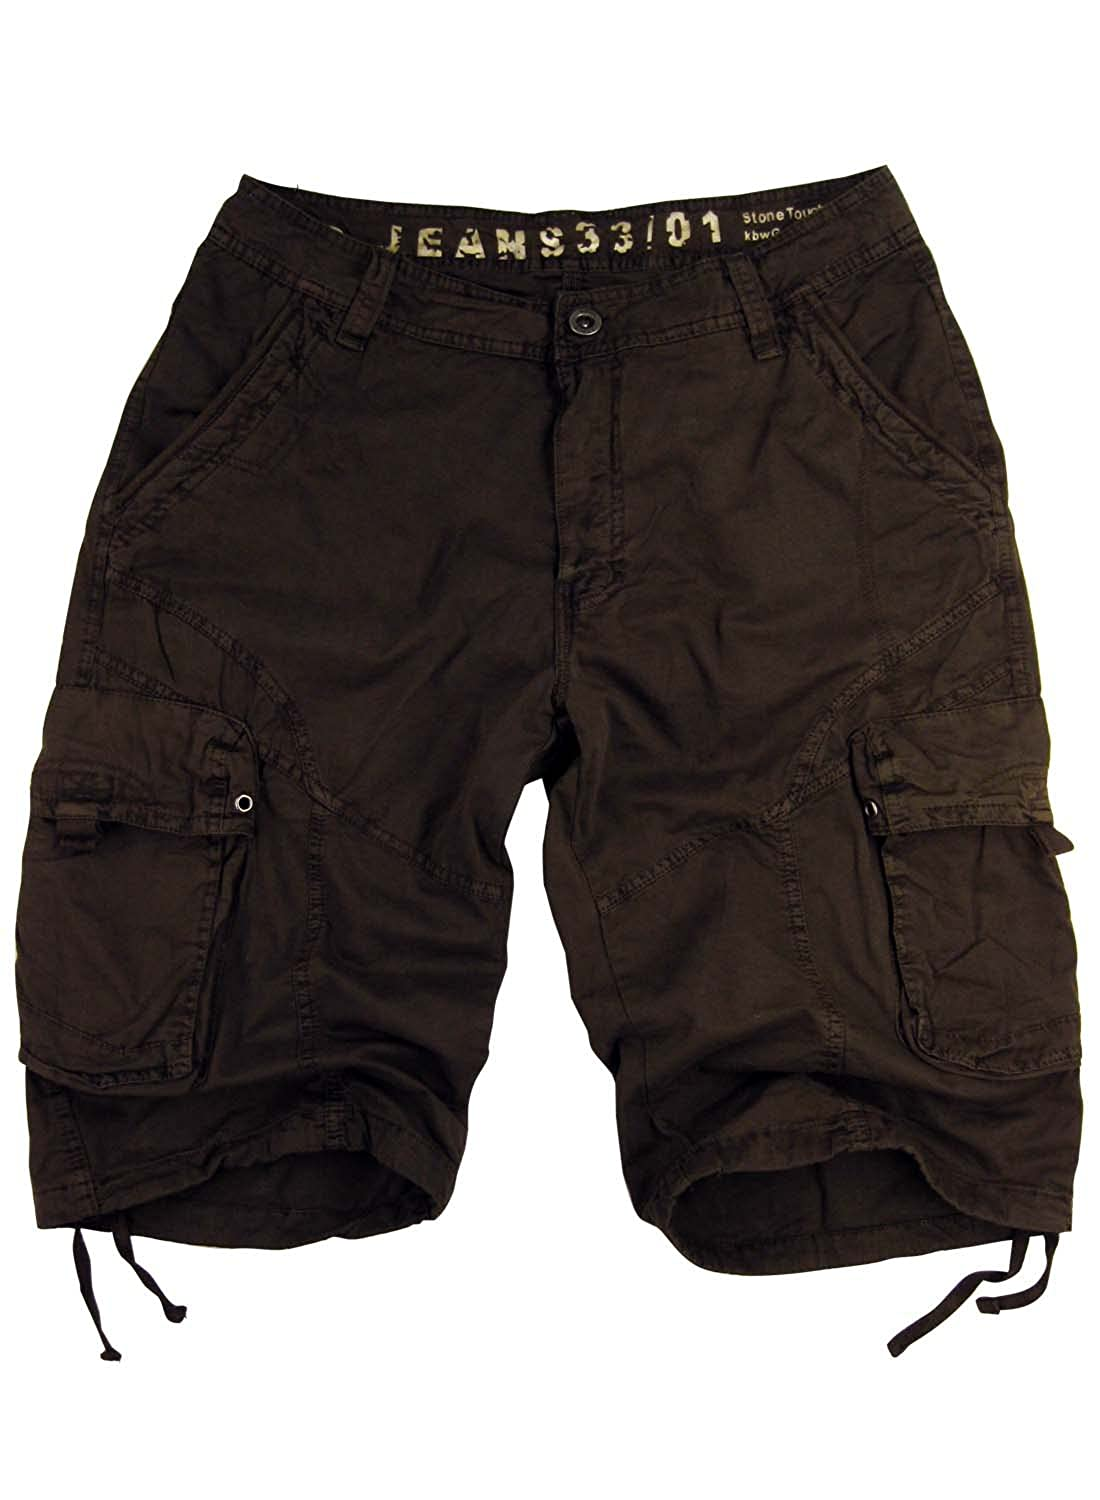 STONE TOUCH Mens Military-Style Cargo Shorts #27s 27Ss